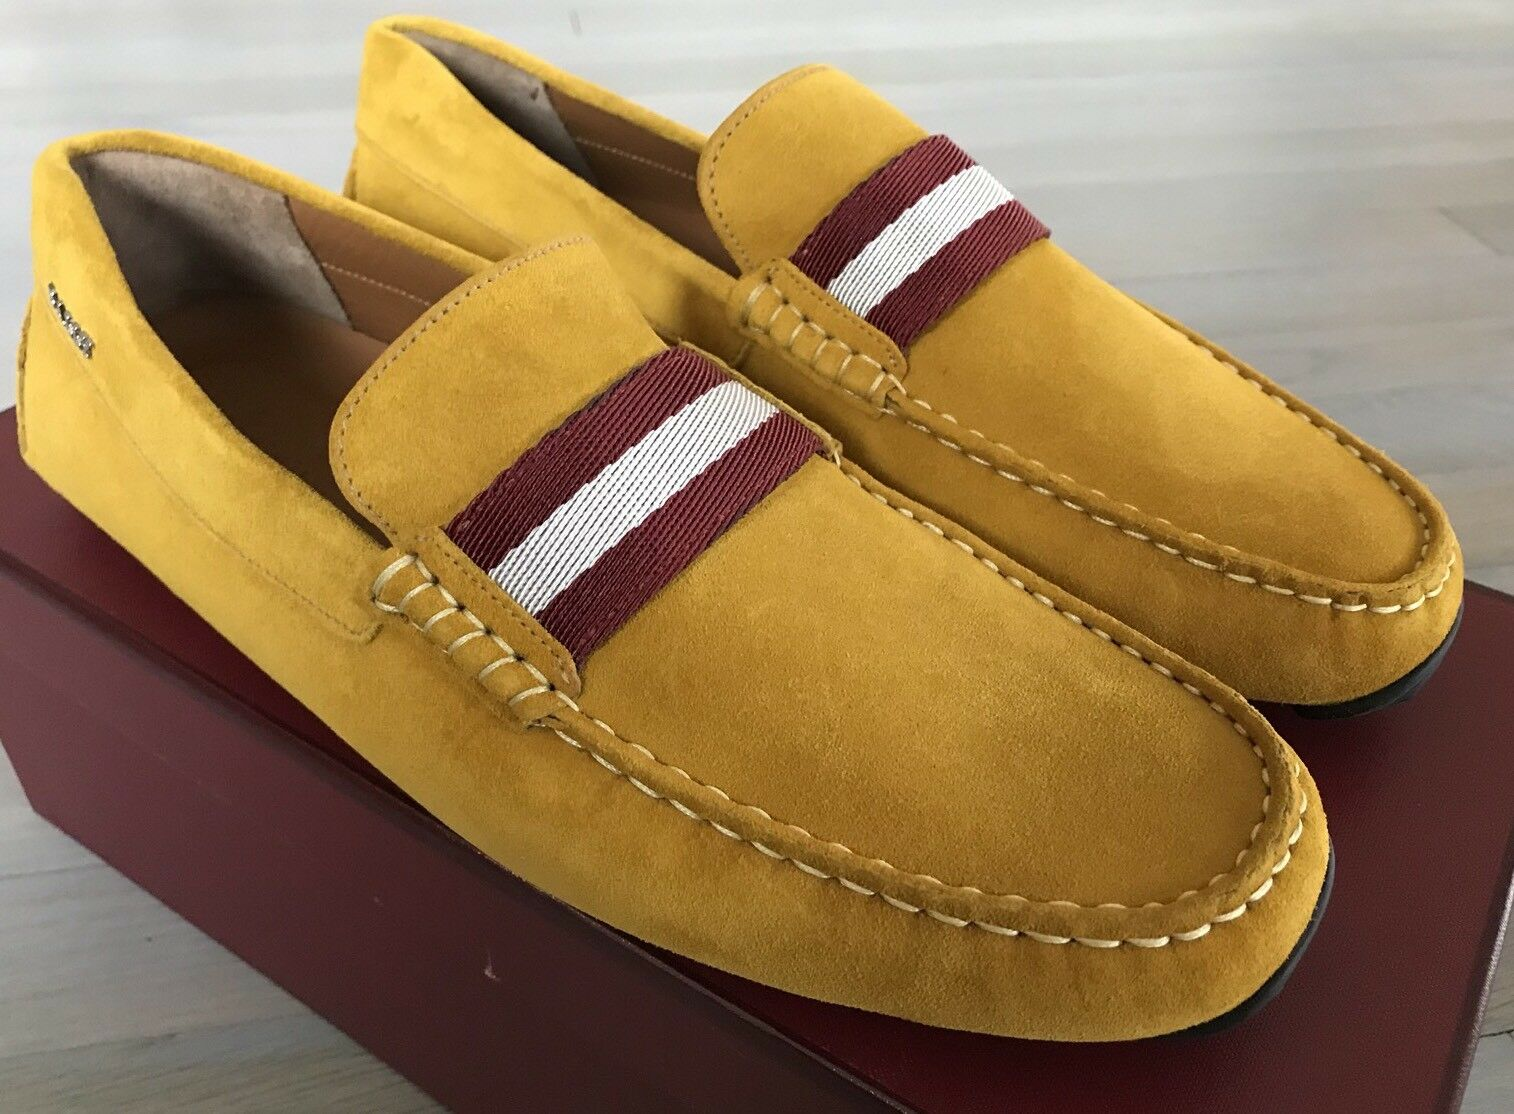 550  Bally Pearce Mustard Suede Driver Size US 10.5 Made in